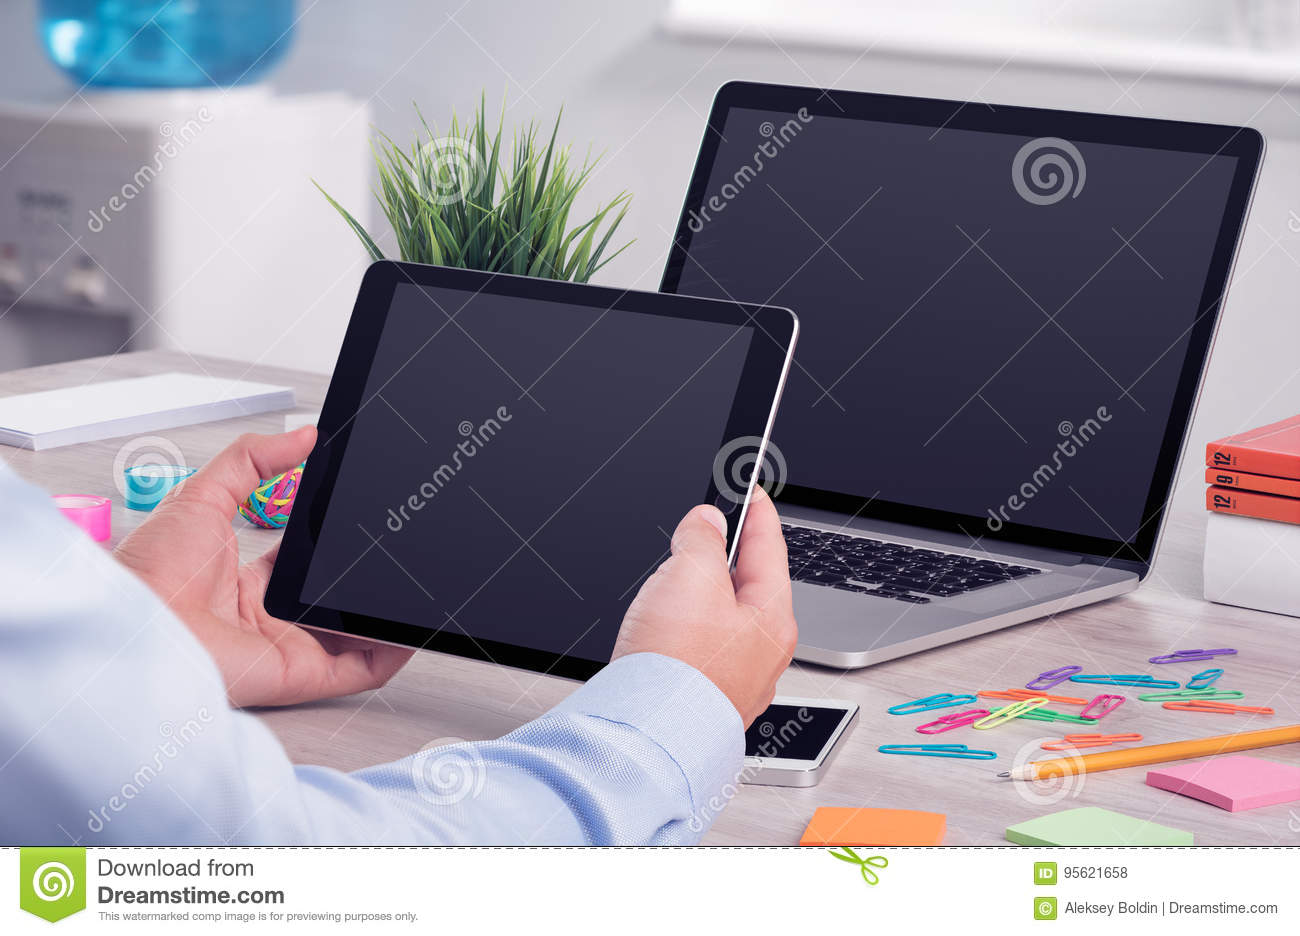 Male hands using ipad digital tablet pc and macbook laptop on the office desk